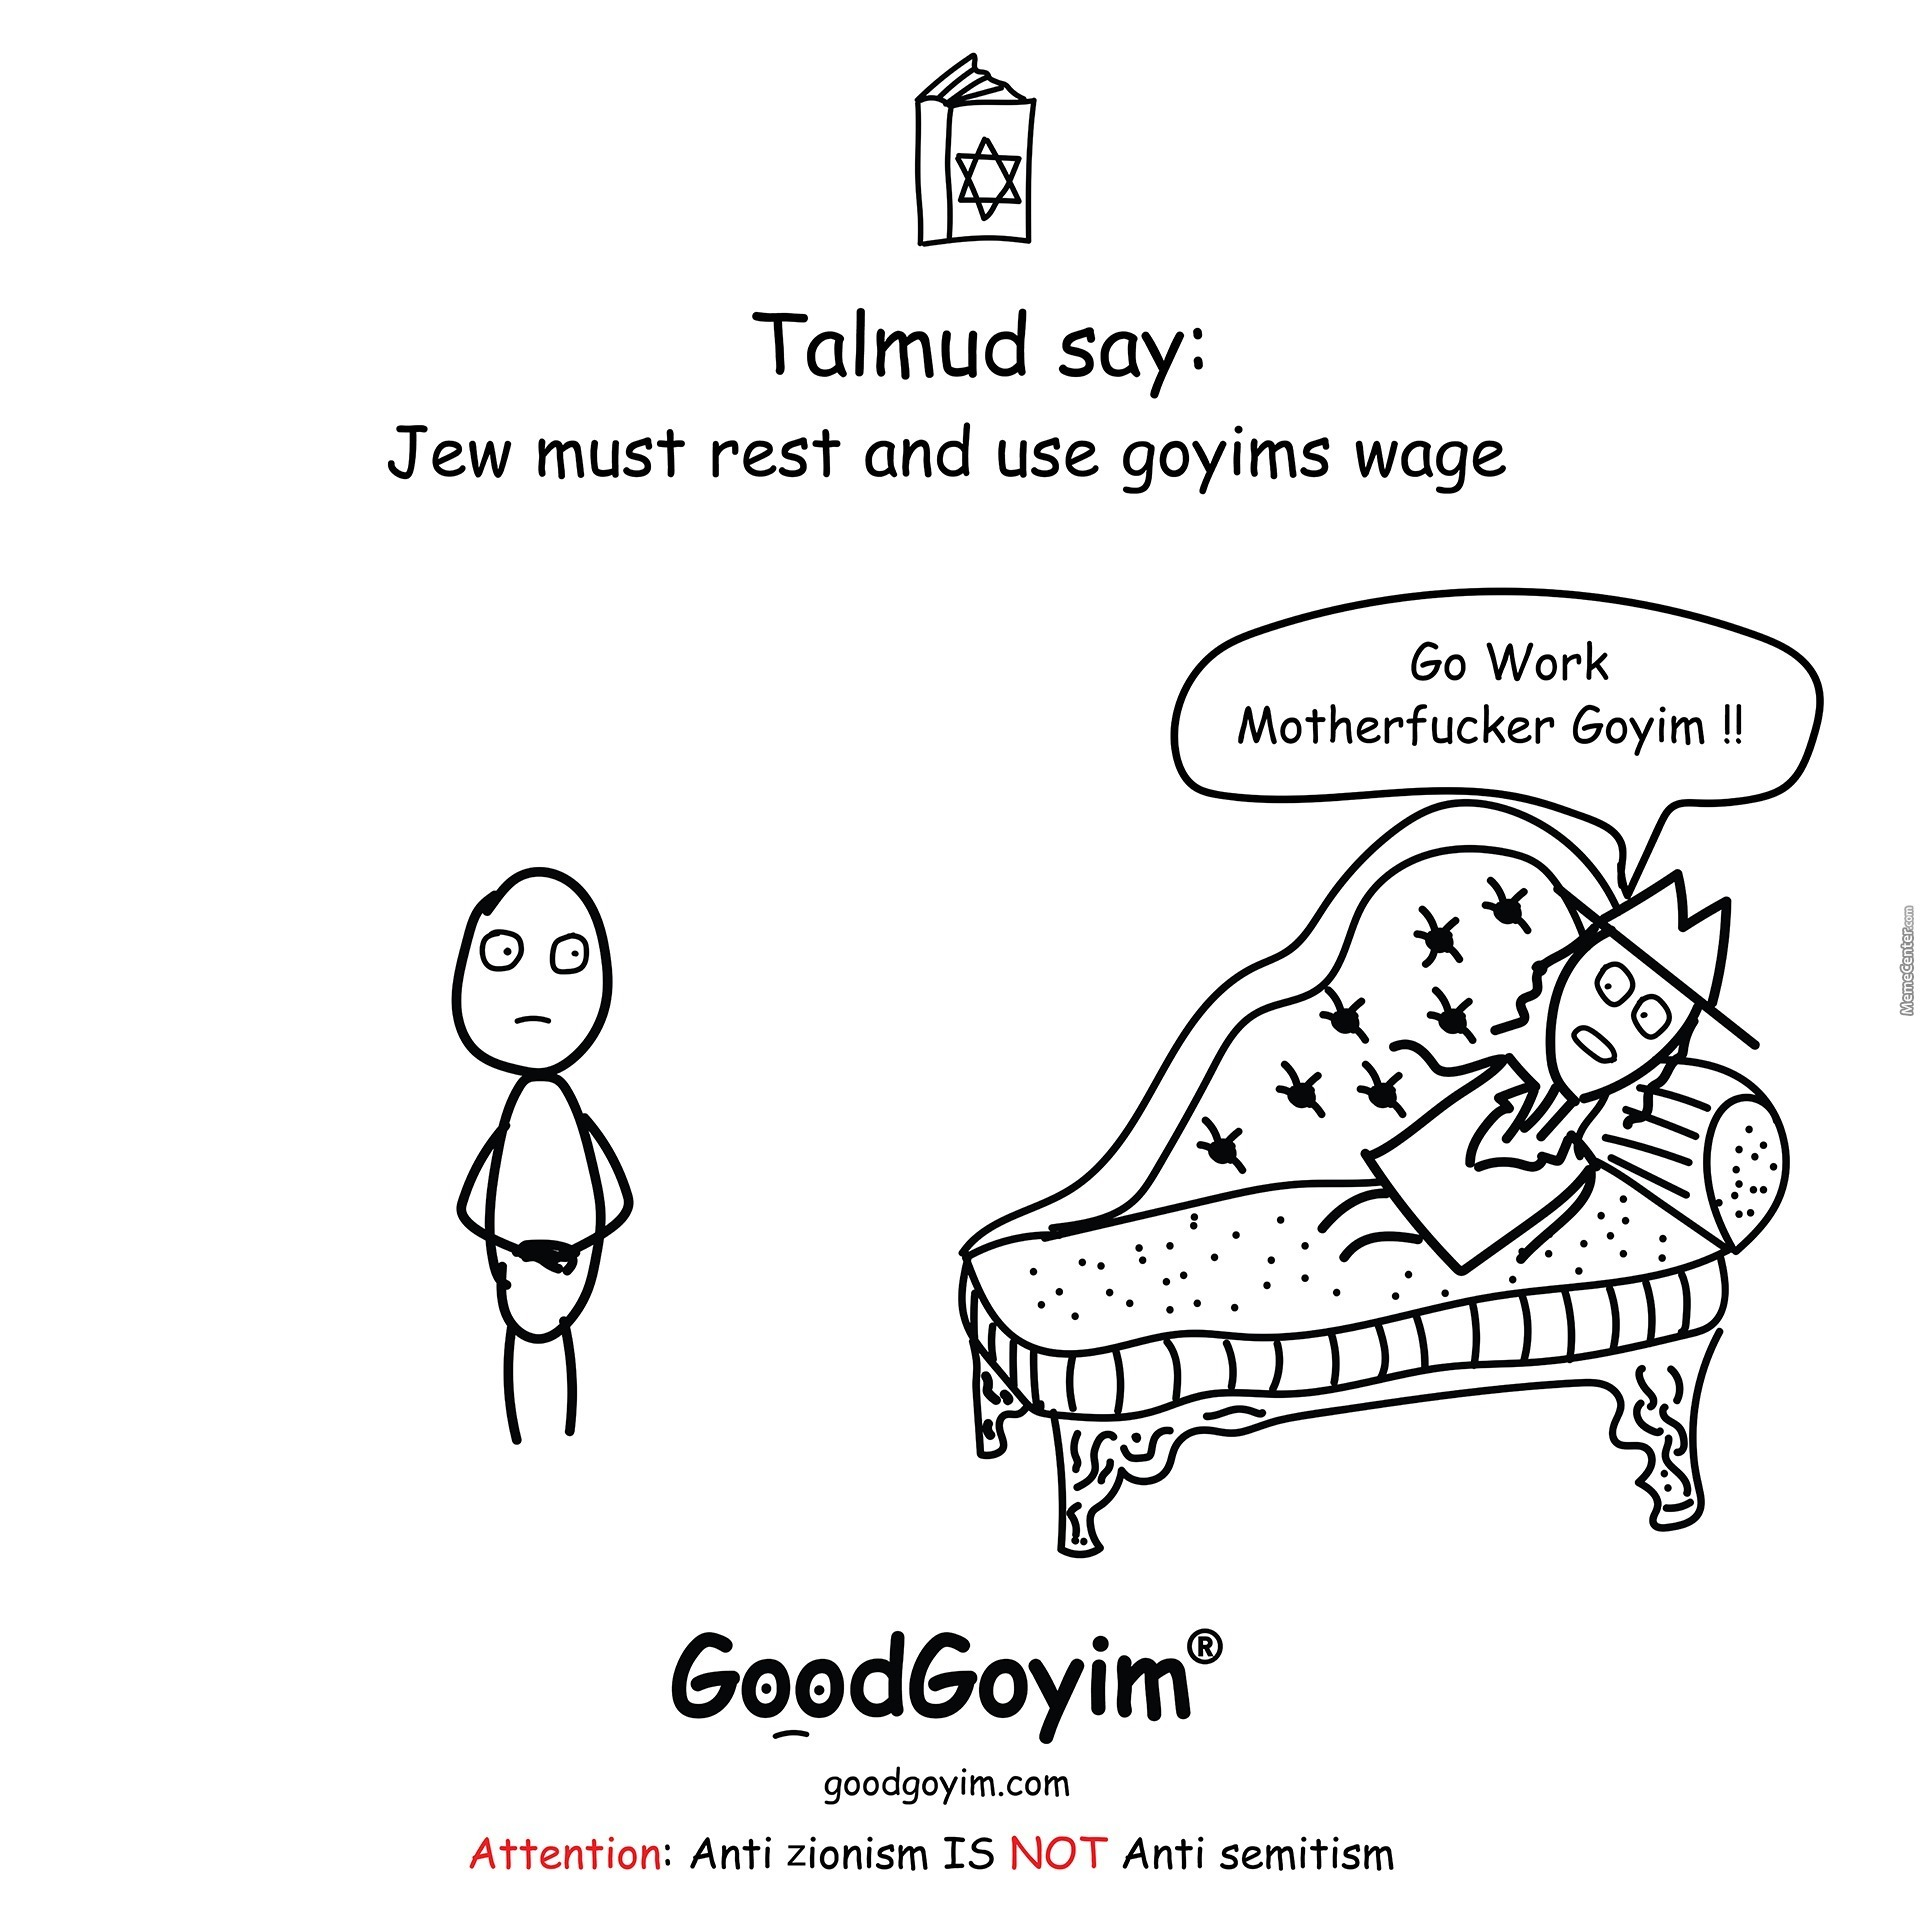 Jew Must Use Goyims Wage #talmud #jew #use #goyim #wage #goodgoyim